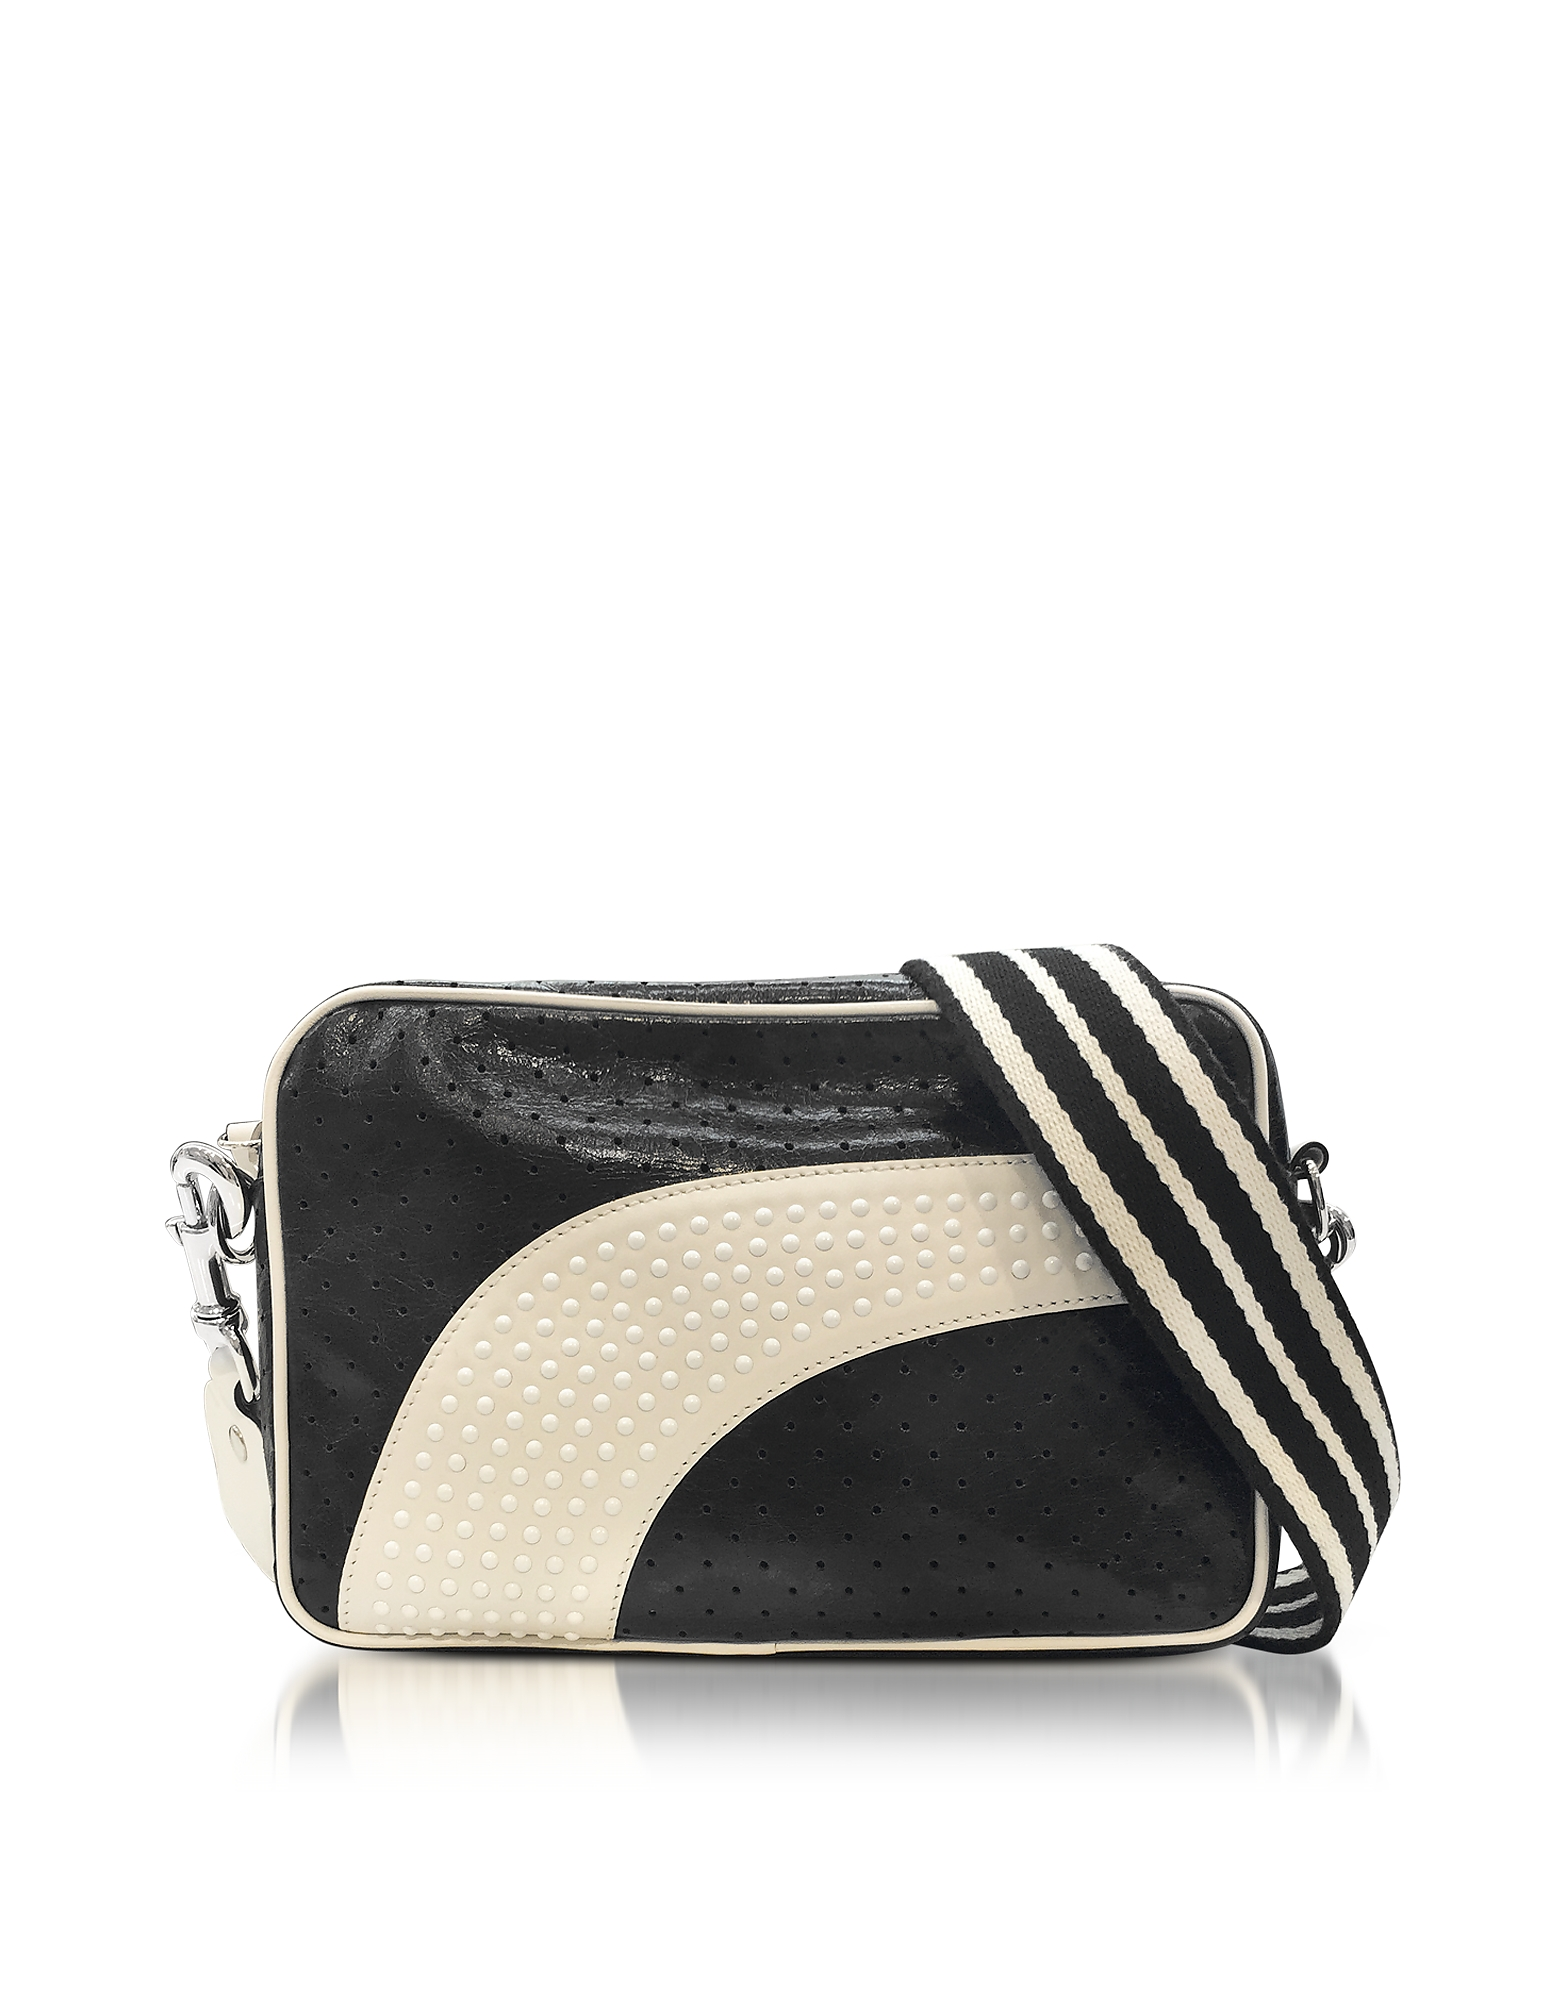 Image of RED Valentino Designer Handbags, Black/Milk White Perforated Leather Crossbody Bag w/Studs